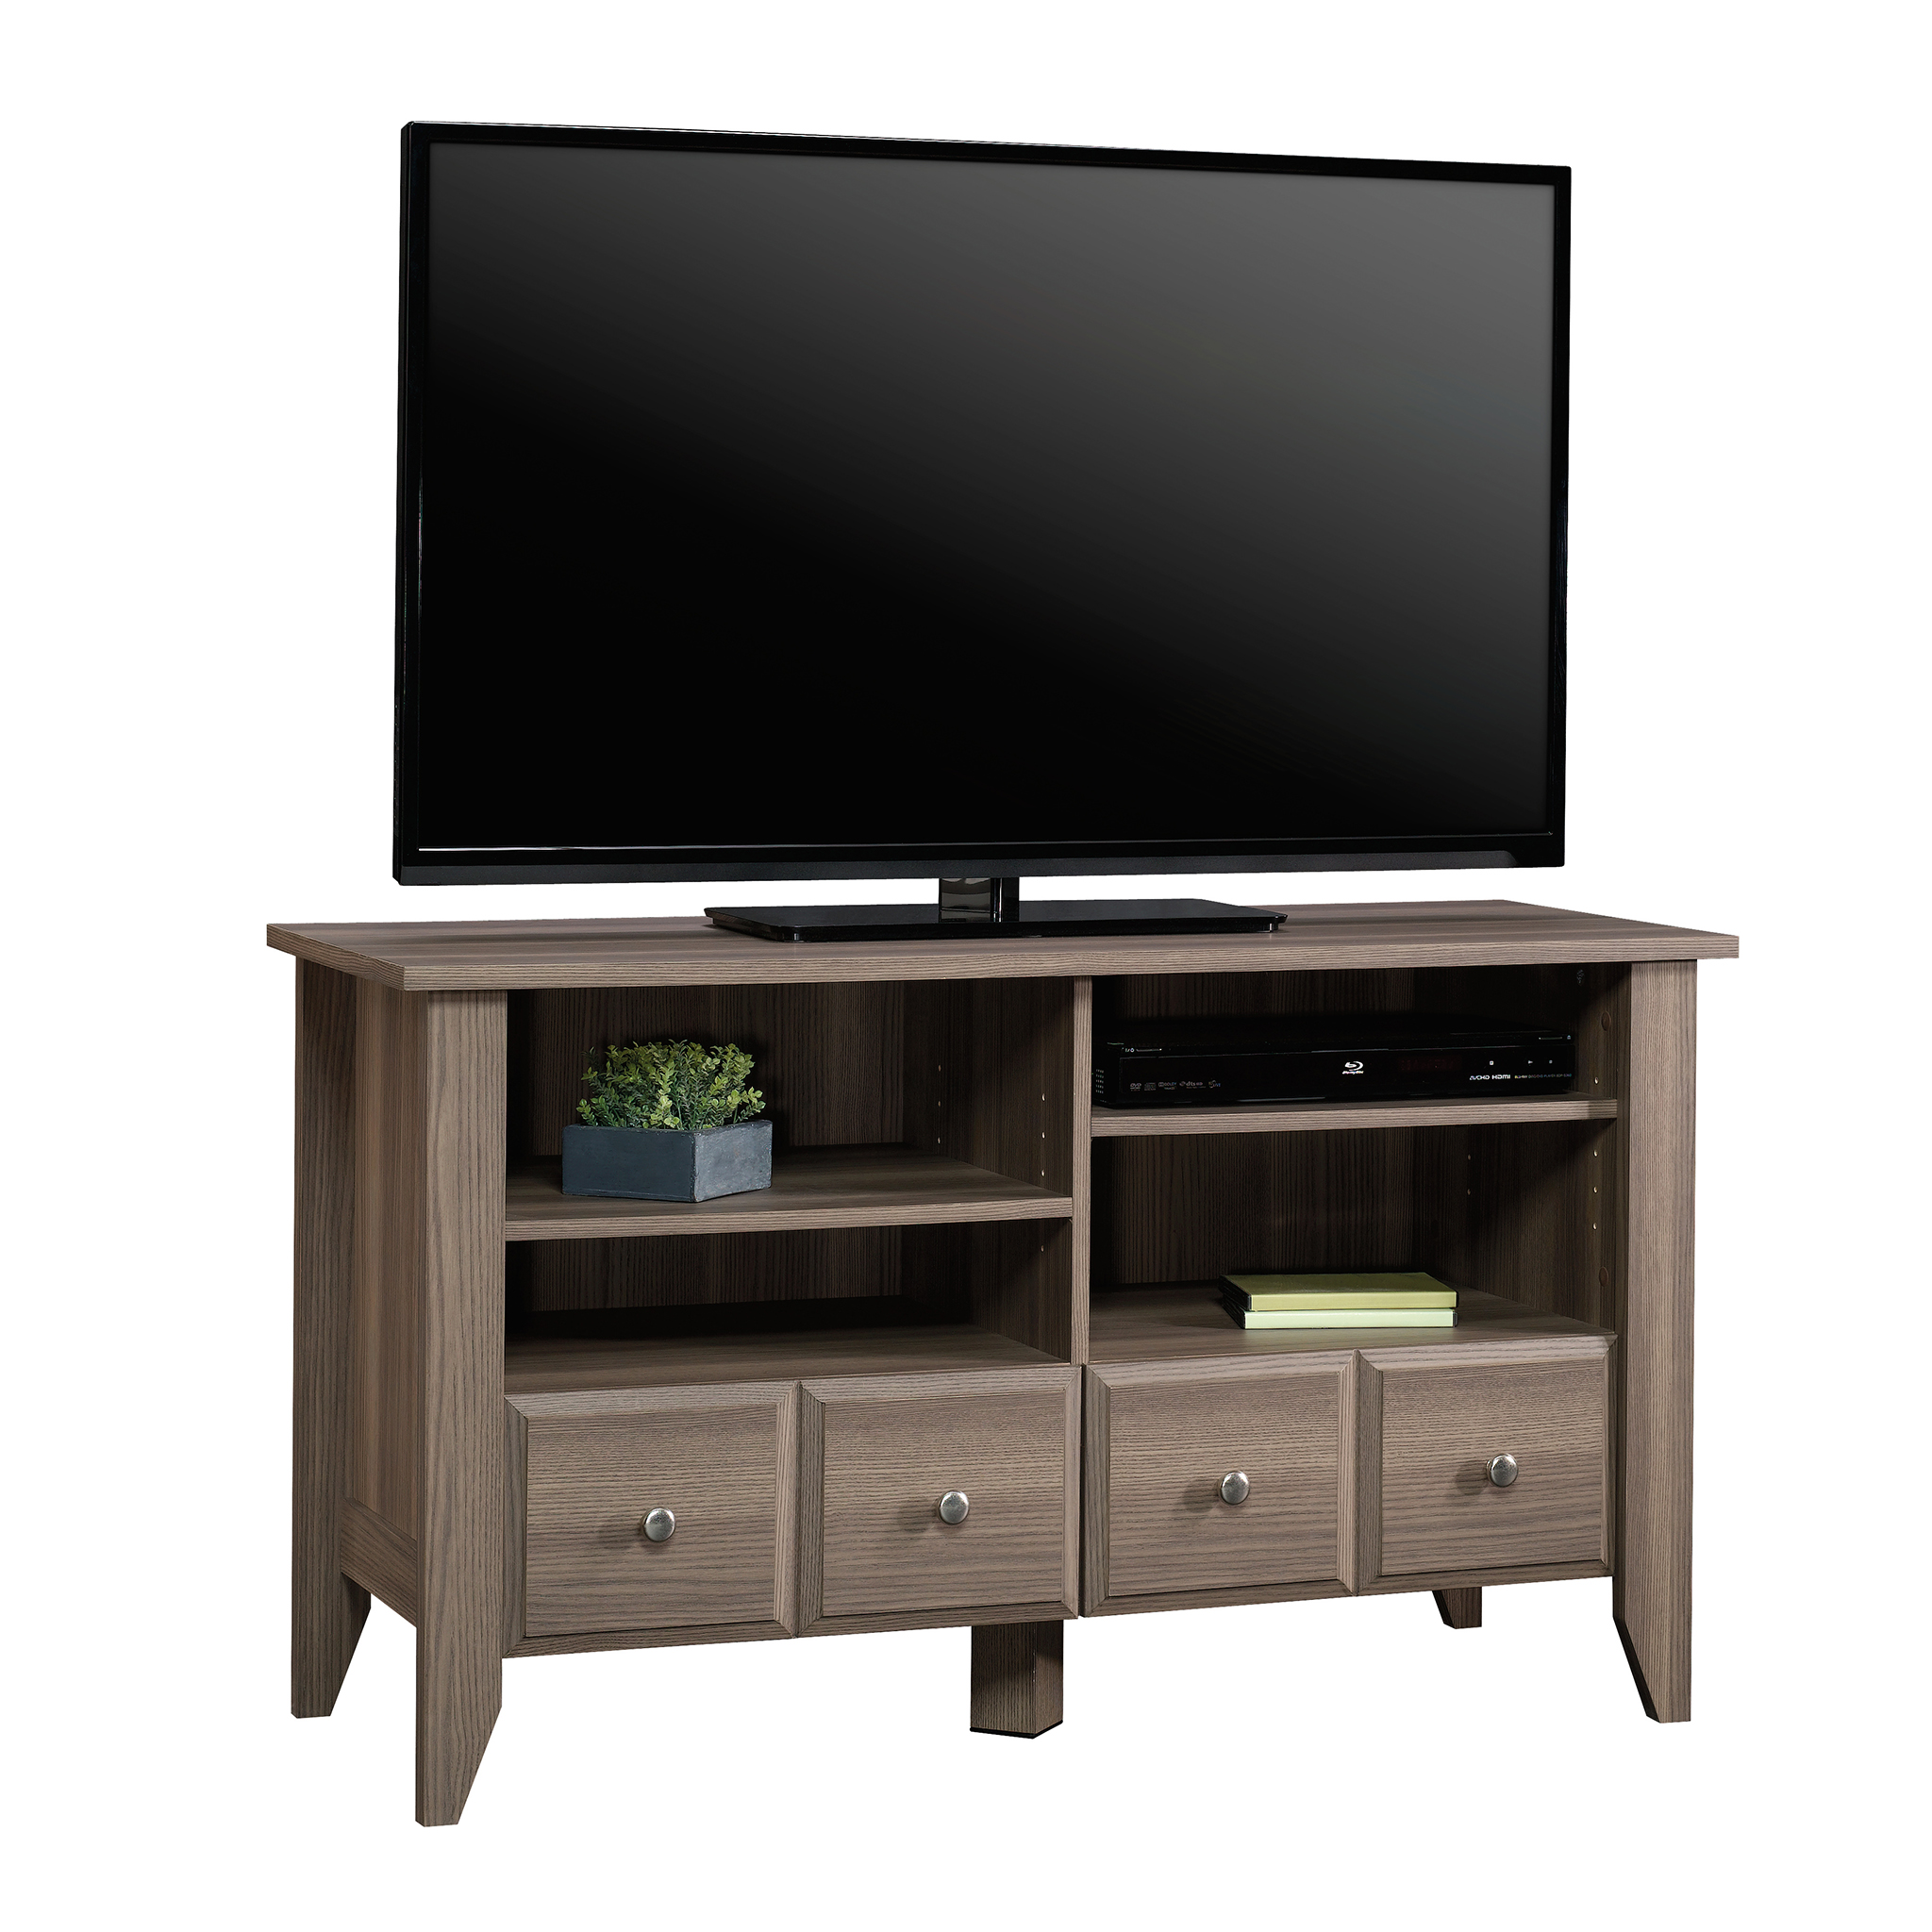 Samsung Tv Floor Stand With Shelf Home Flooring Ideas